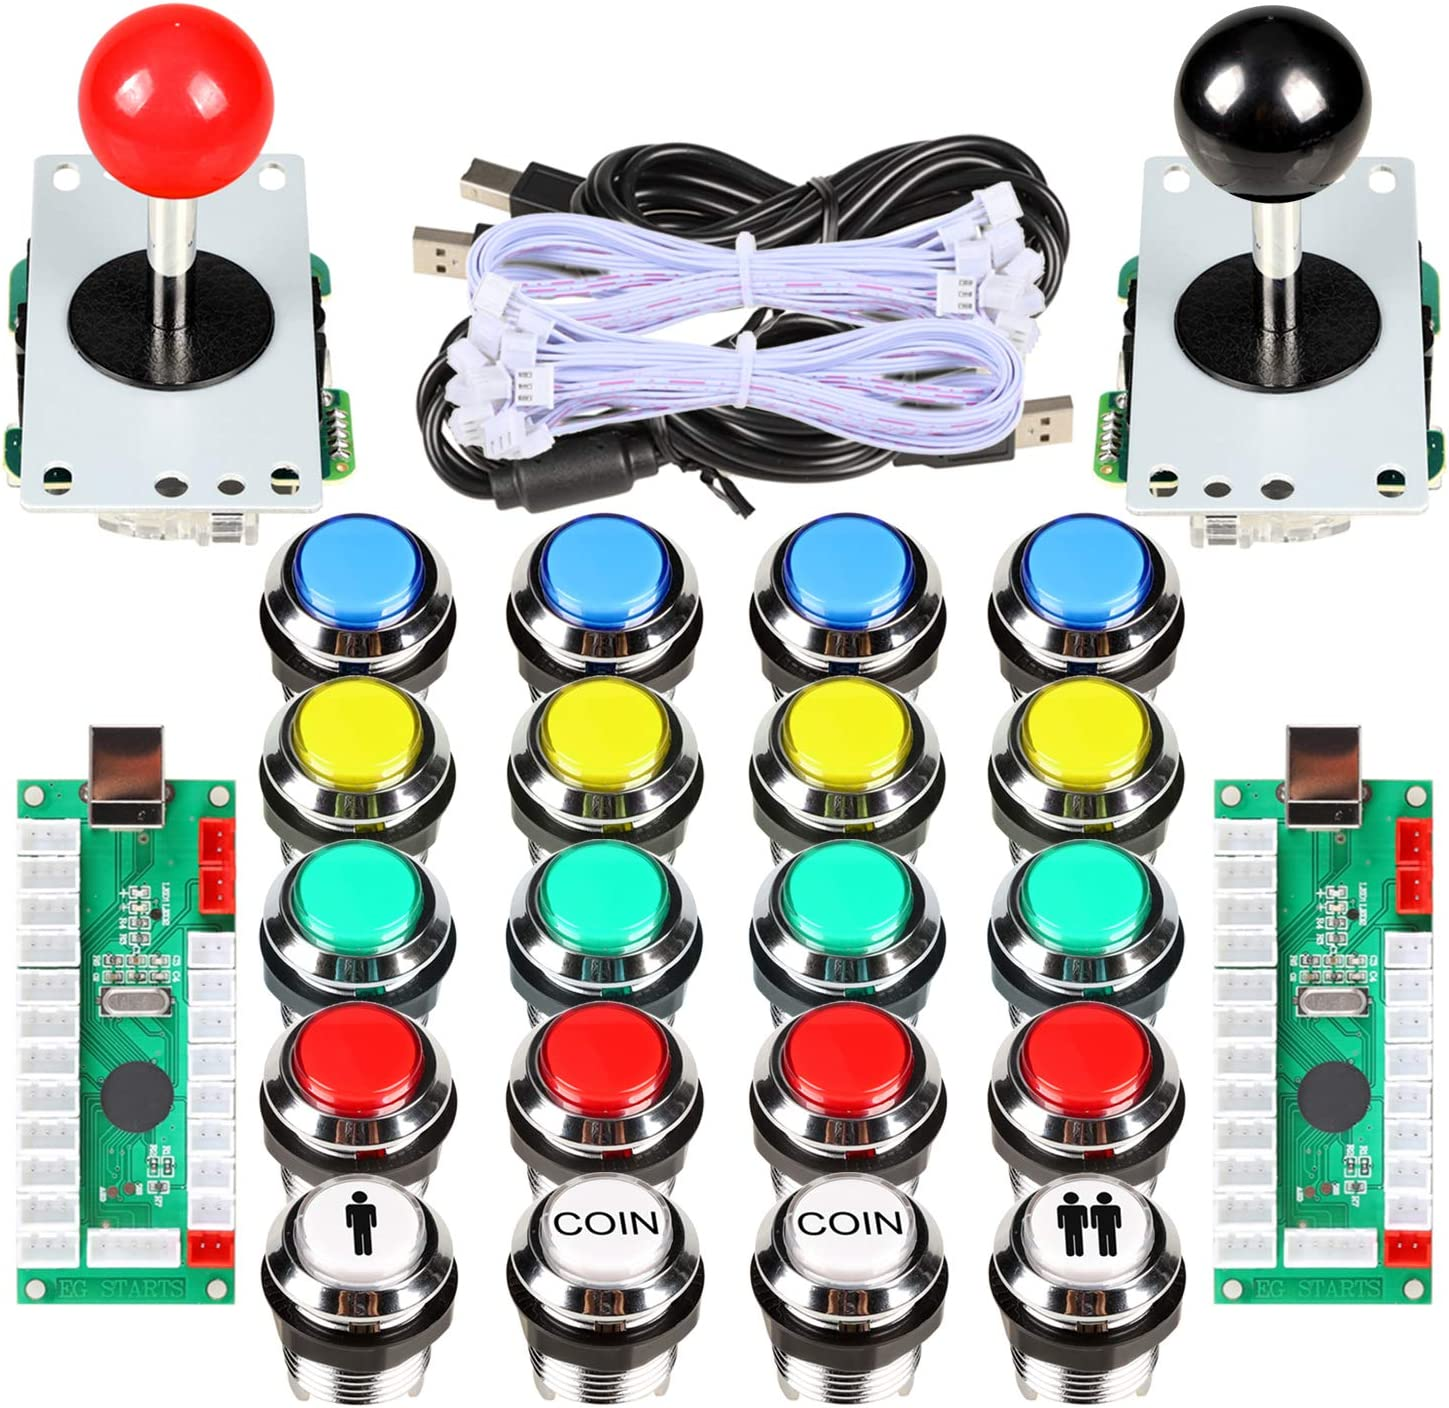 Avisiri 2 Player Arcade Joystick DIY Kit 2 x 8 Way Joystick + 20x Chrome LED Arcade Buttons Game Kit for PC Raspberry Pi Video Games (Mix Kits)